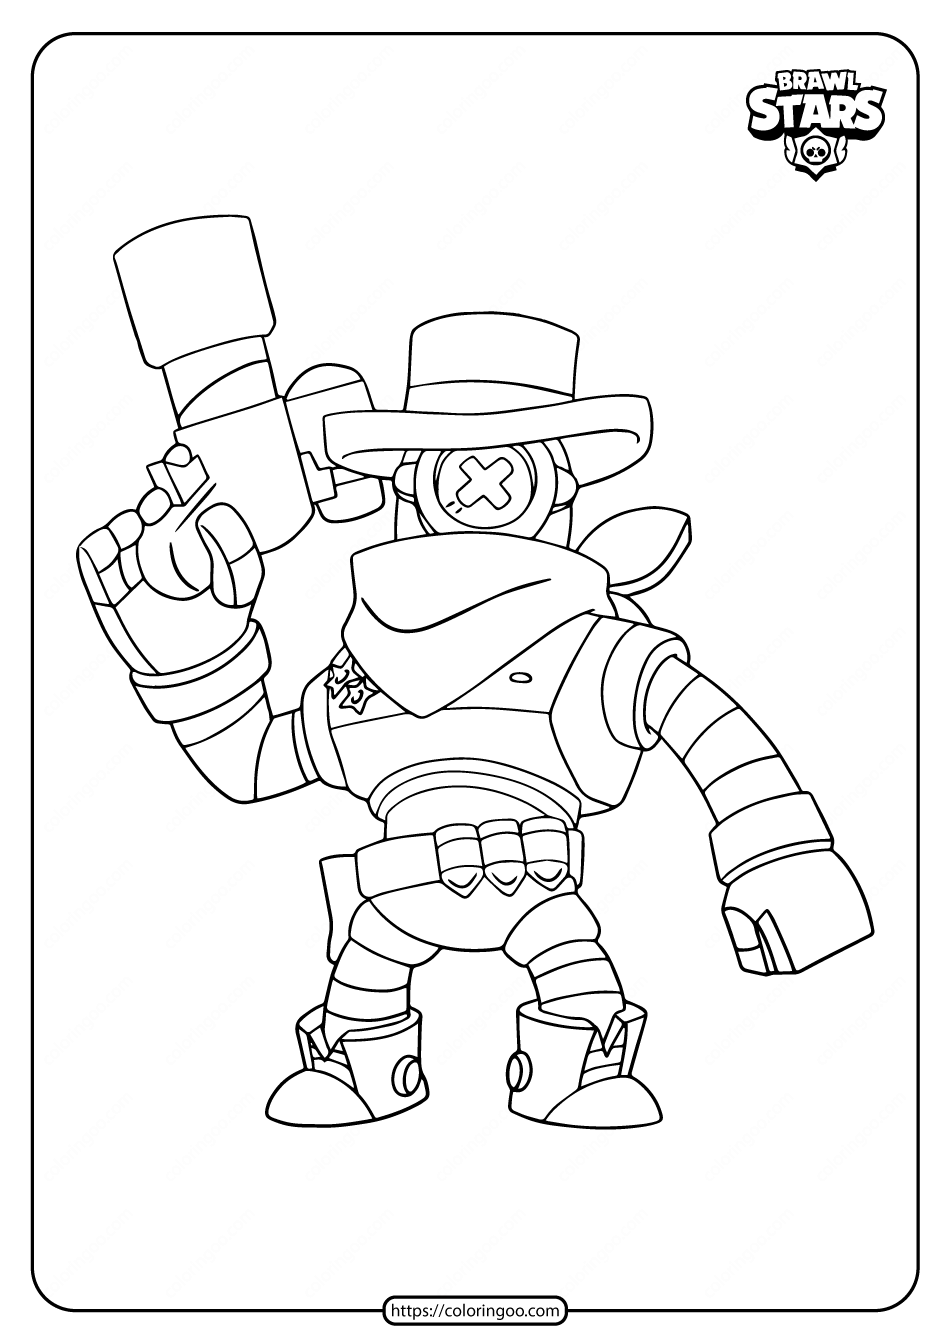 Printable Brawl Stars Sheriff Darryl Coloring Pages